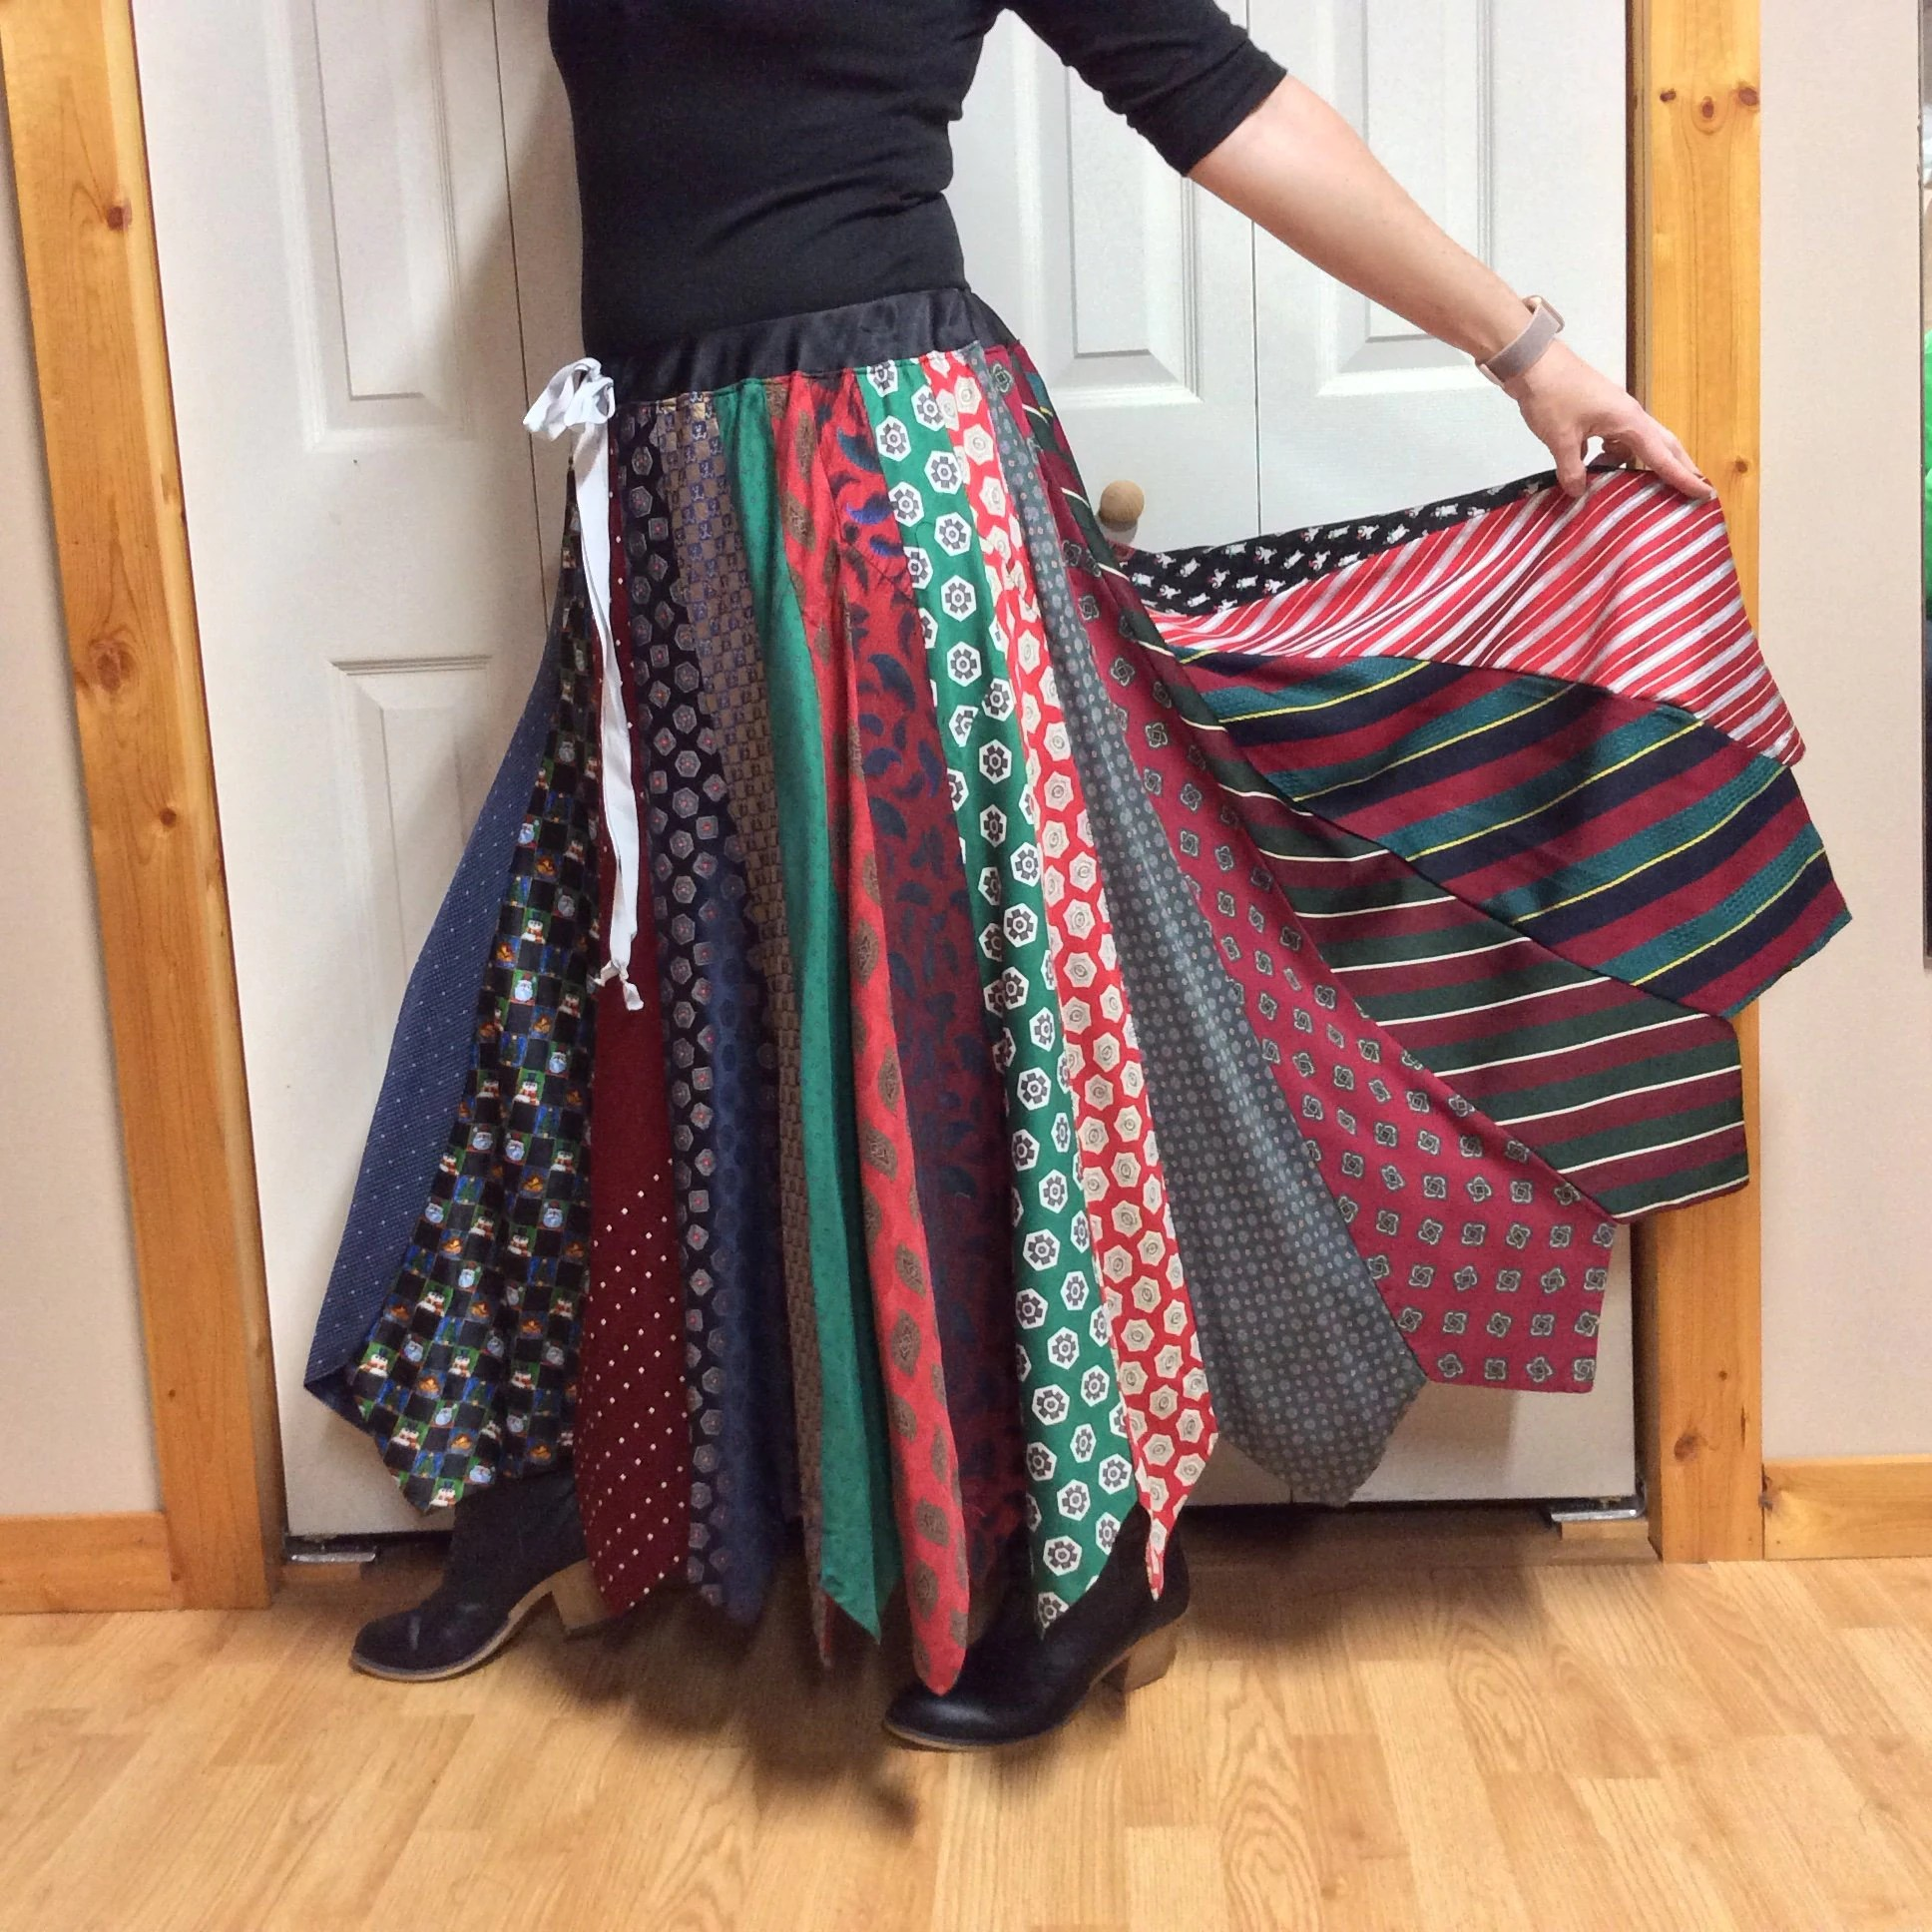 Krawattenrock Christmas Necktie Skirt Plus Size Long Skirt Holiday Party Skirt Woman S L Xl 1x Red And Green Upcycled Recycled Repurposed Clothes